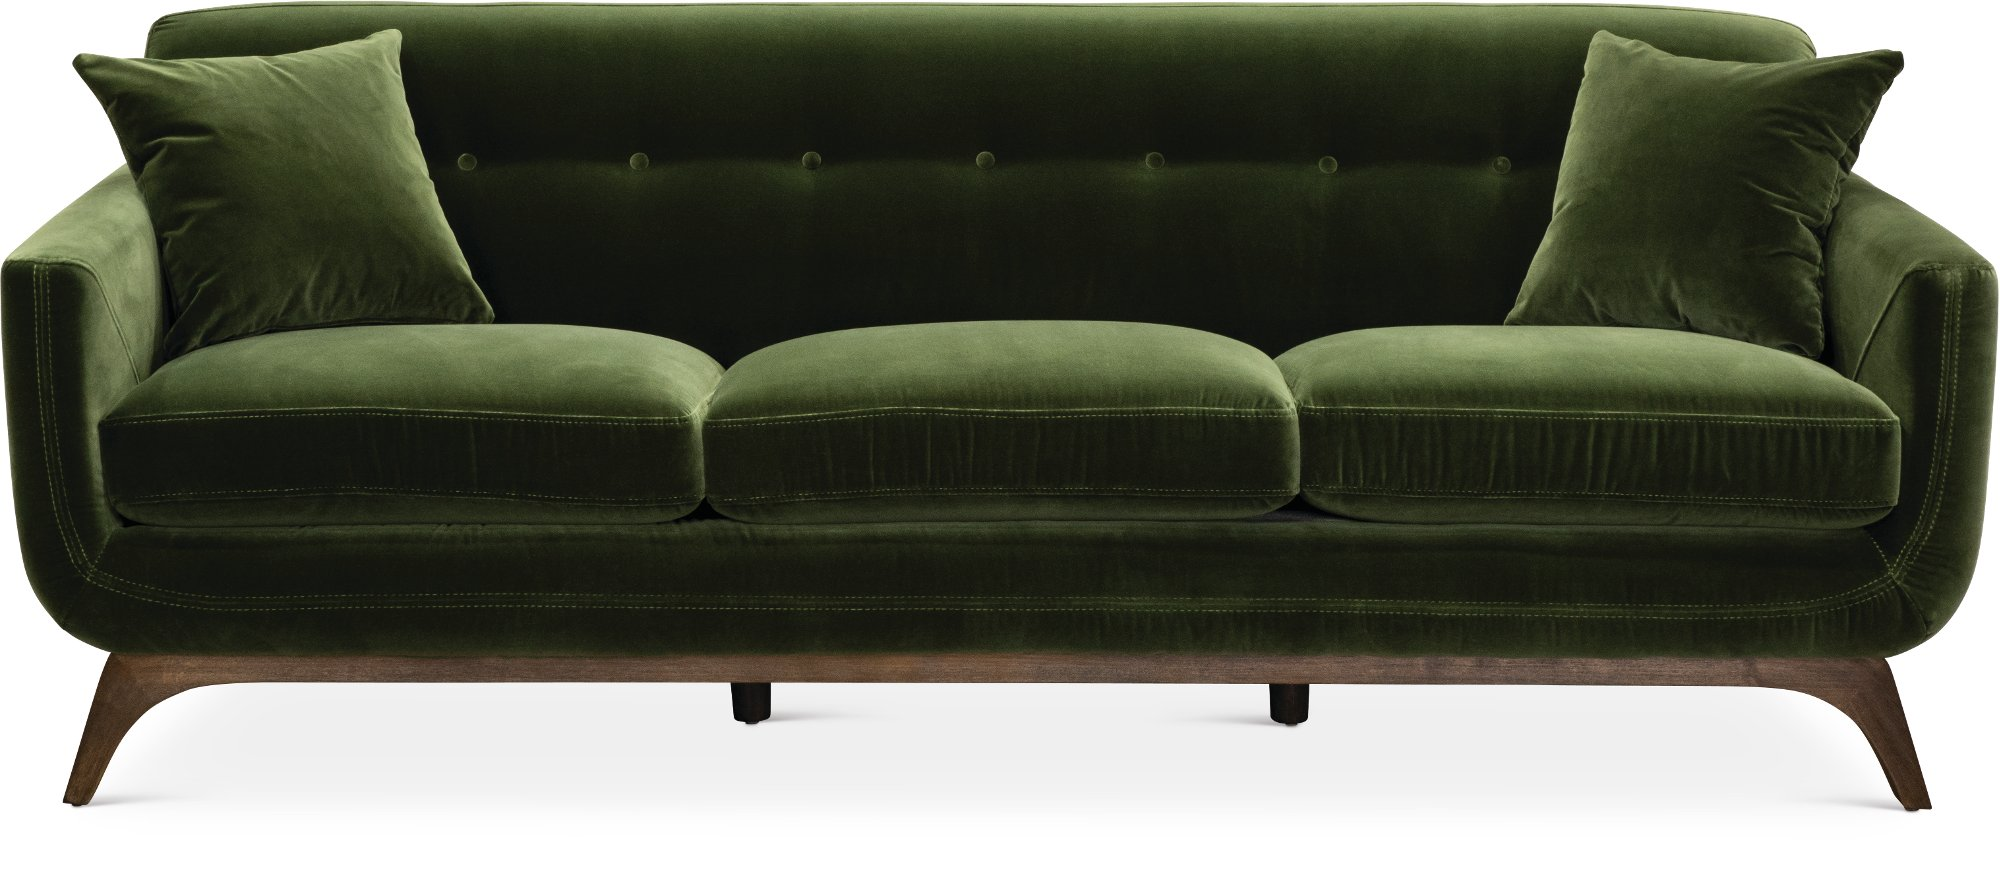 Mid Century Modern Olive Green Sofa Falkirk Rc Willey Furniture